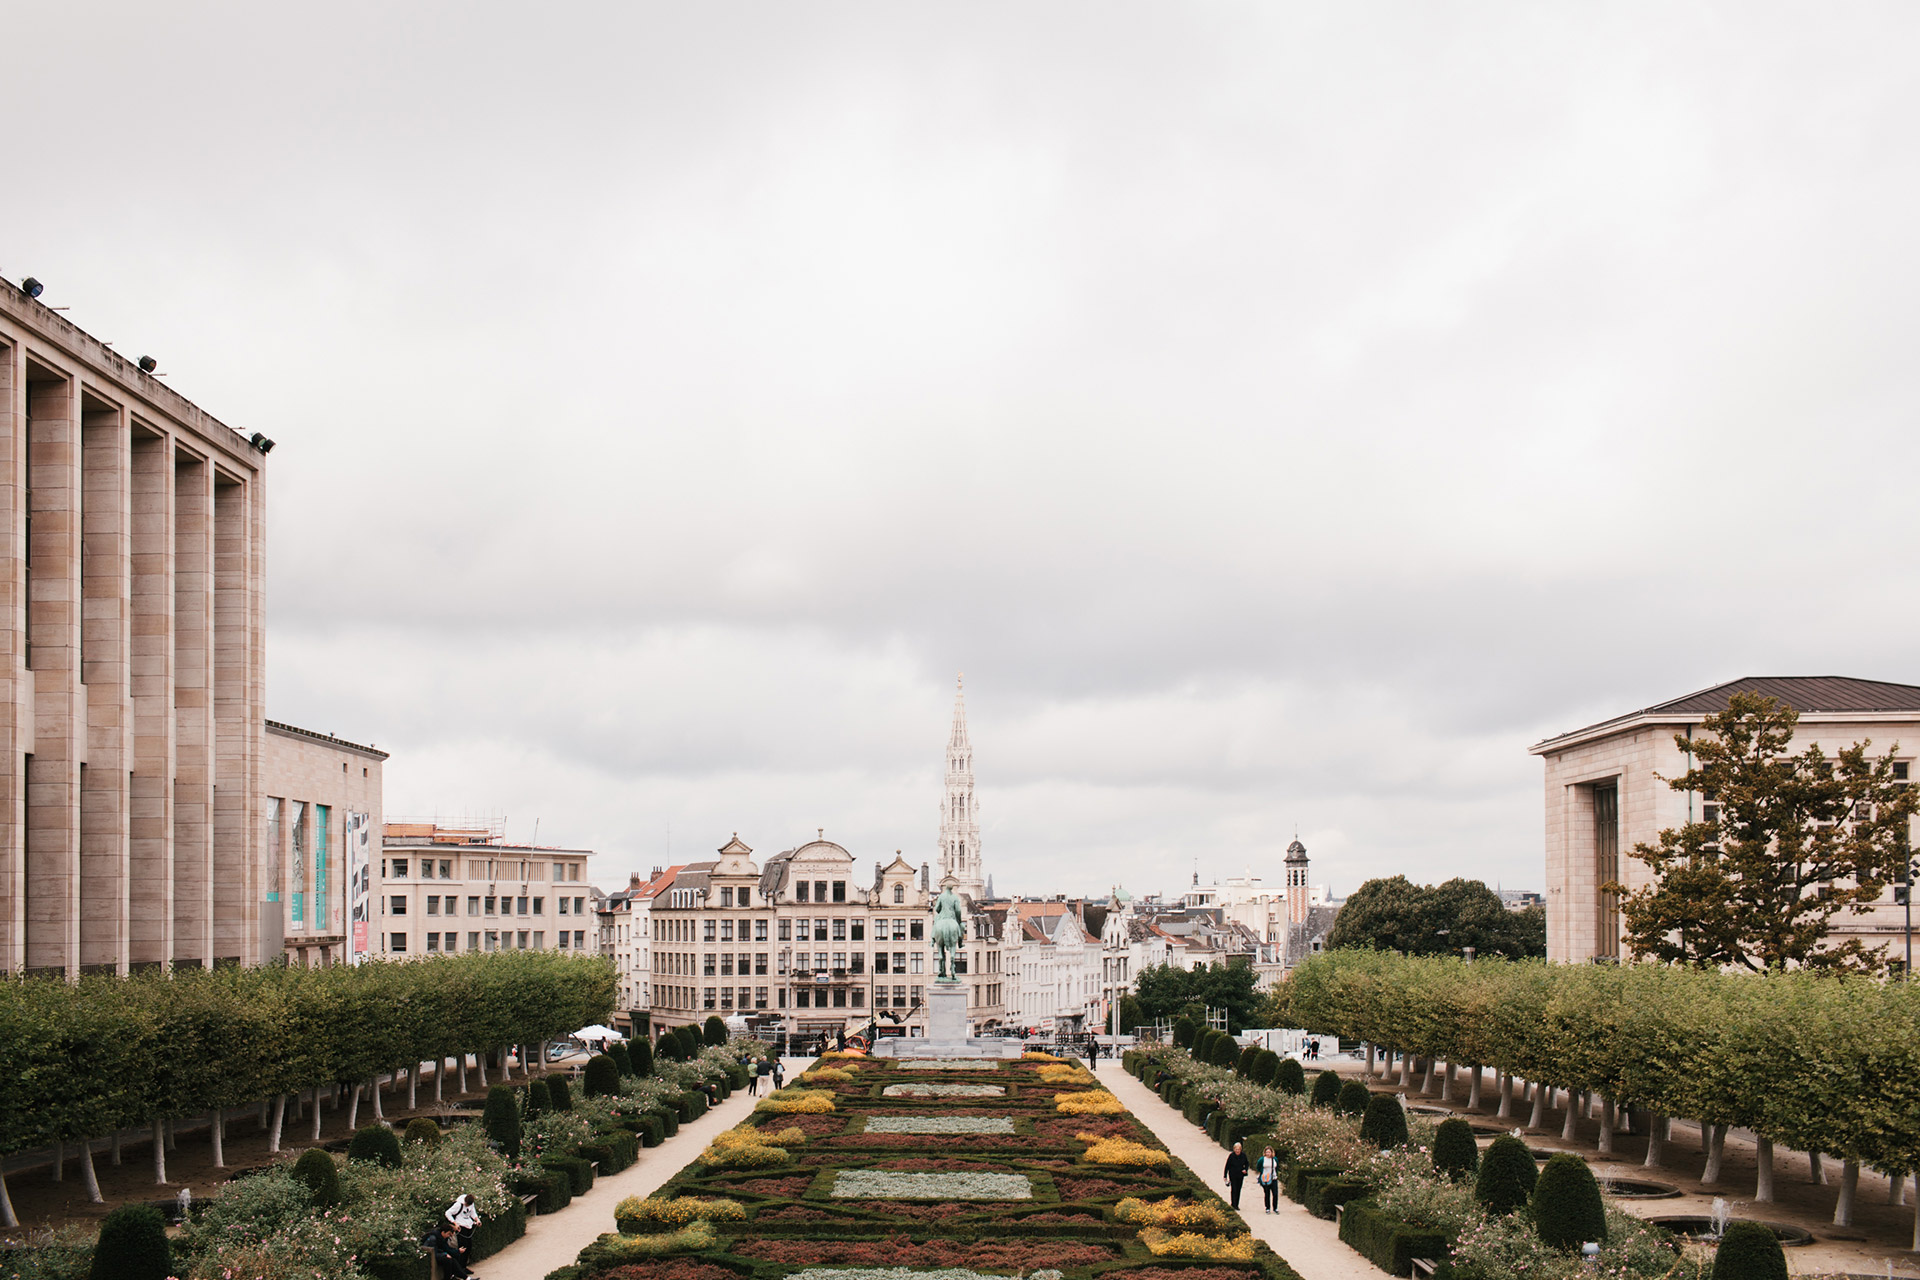 Stopover: Brussels